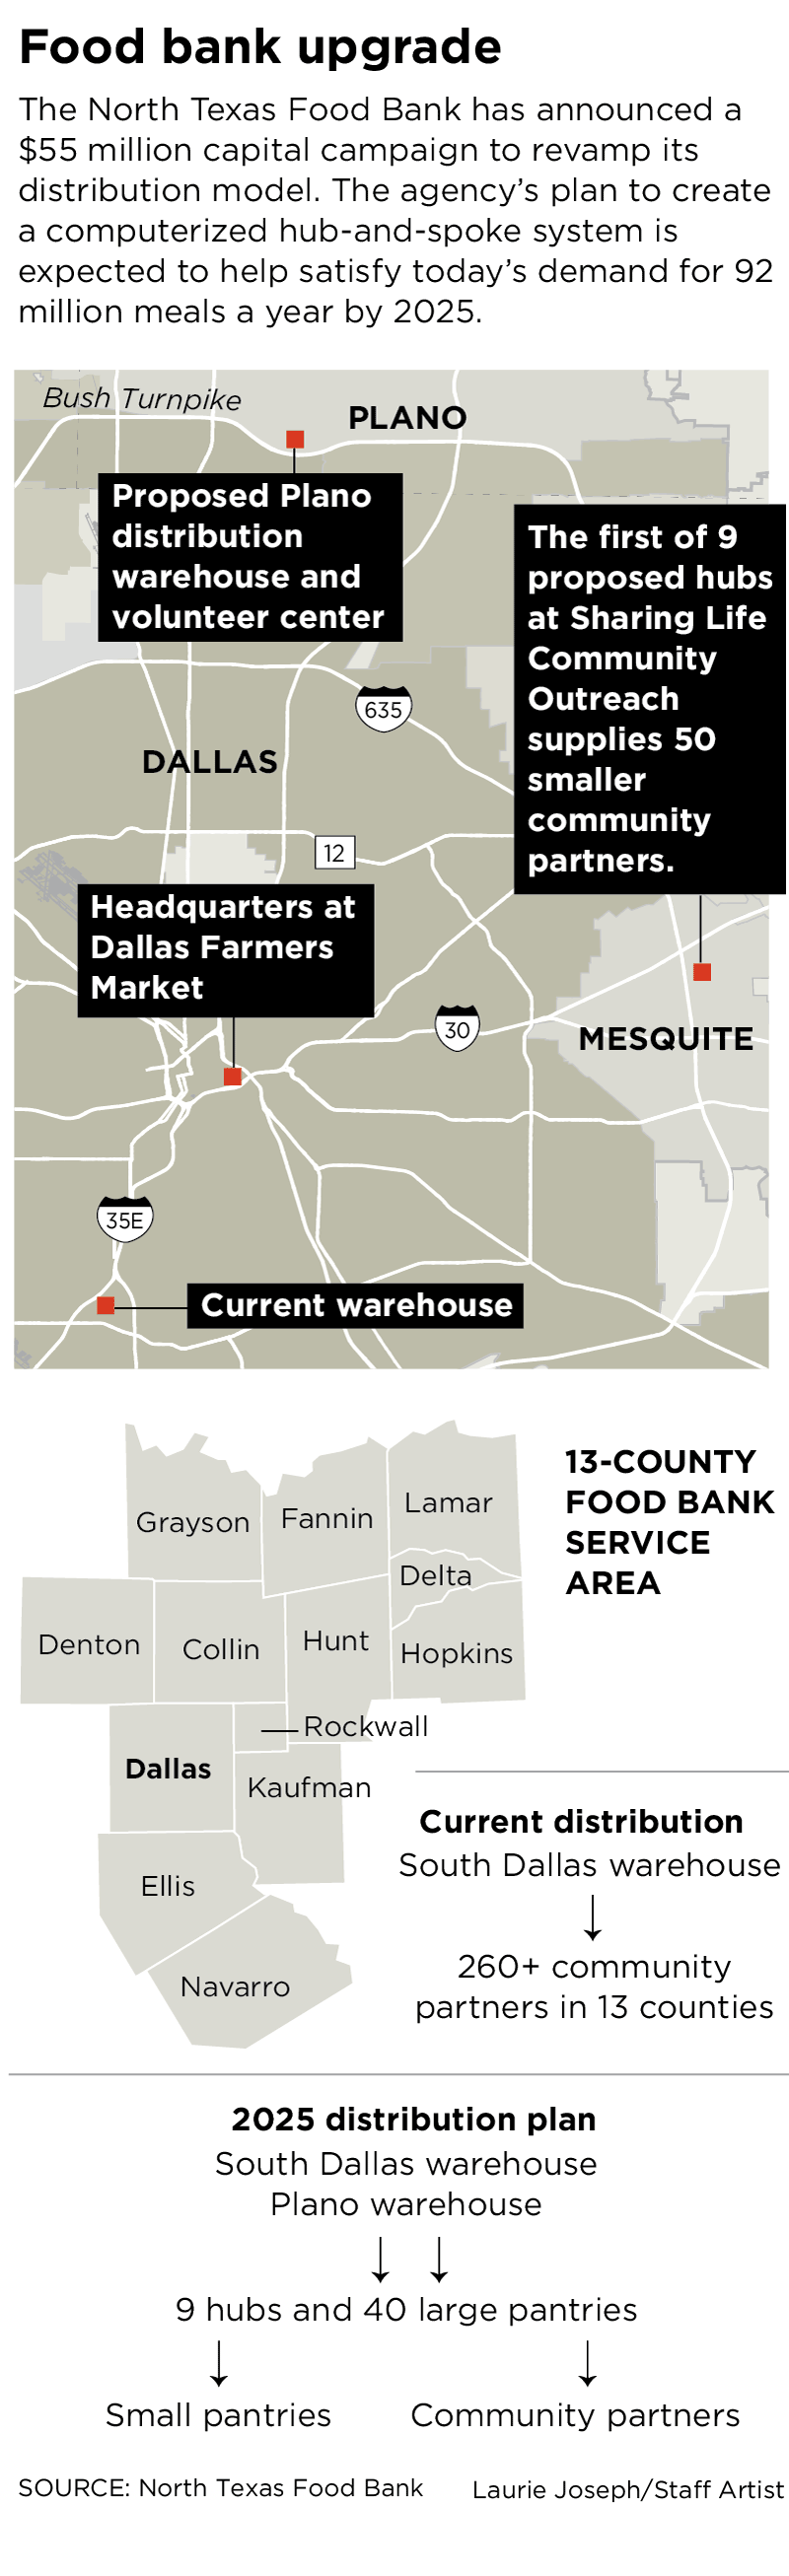 North Texas Food Bank trying to raise 55 million with aim of